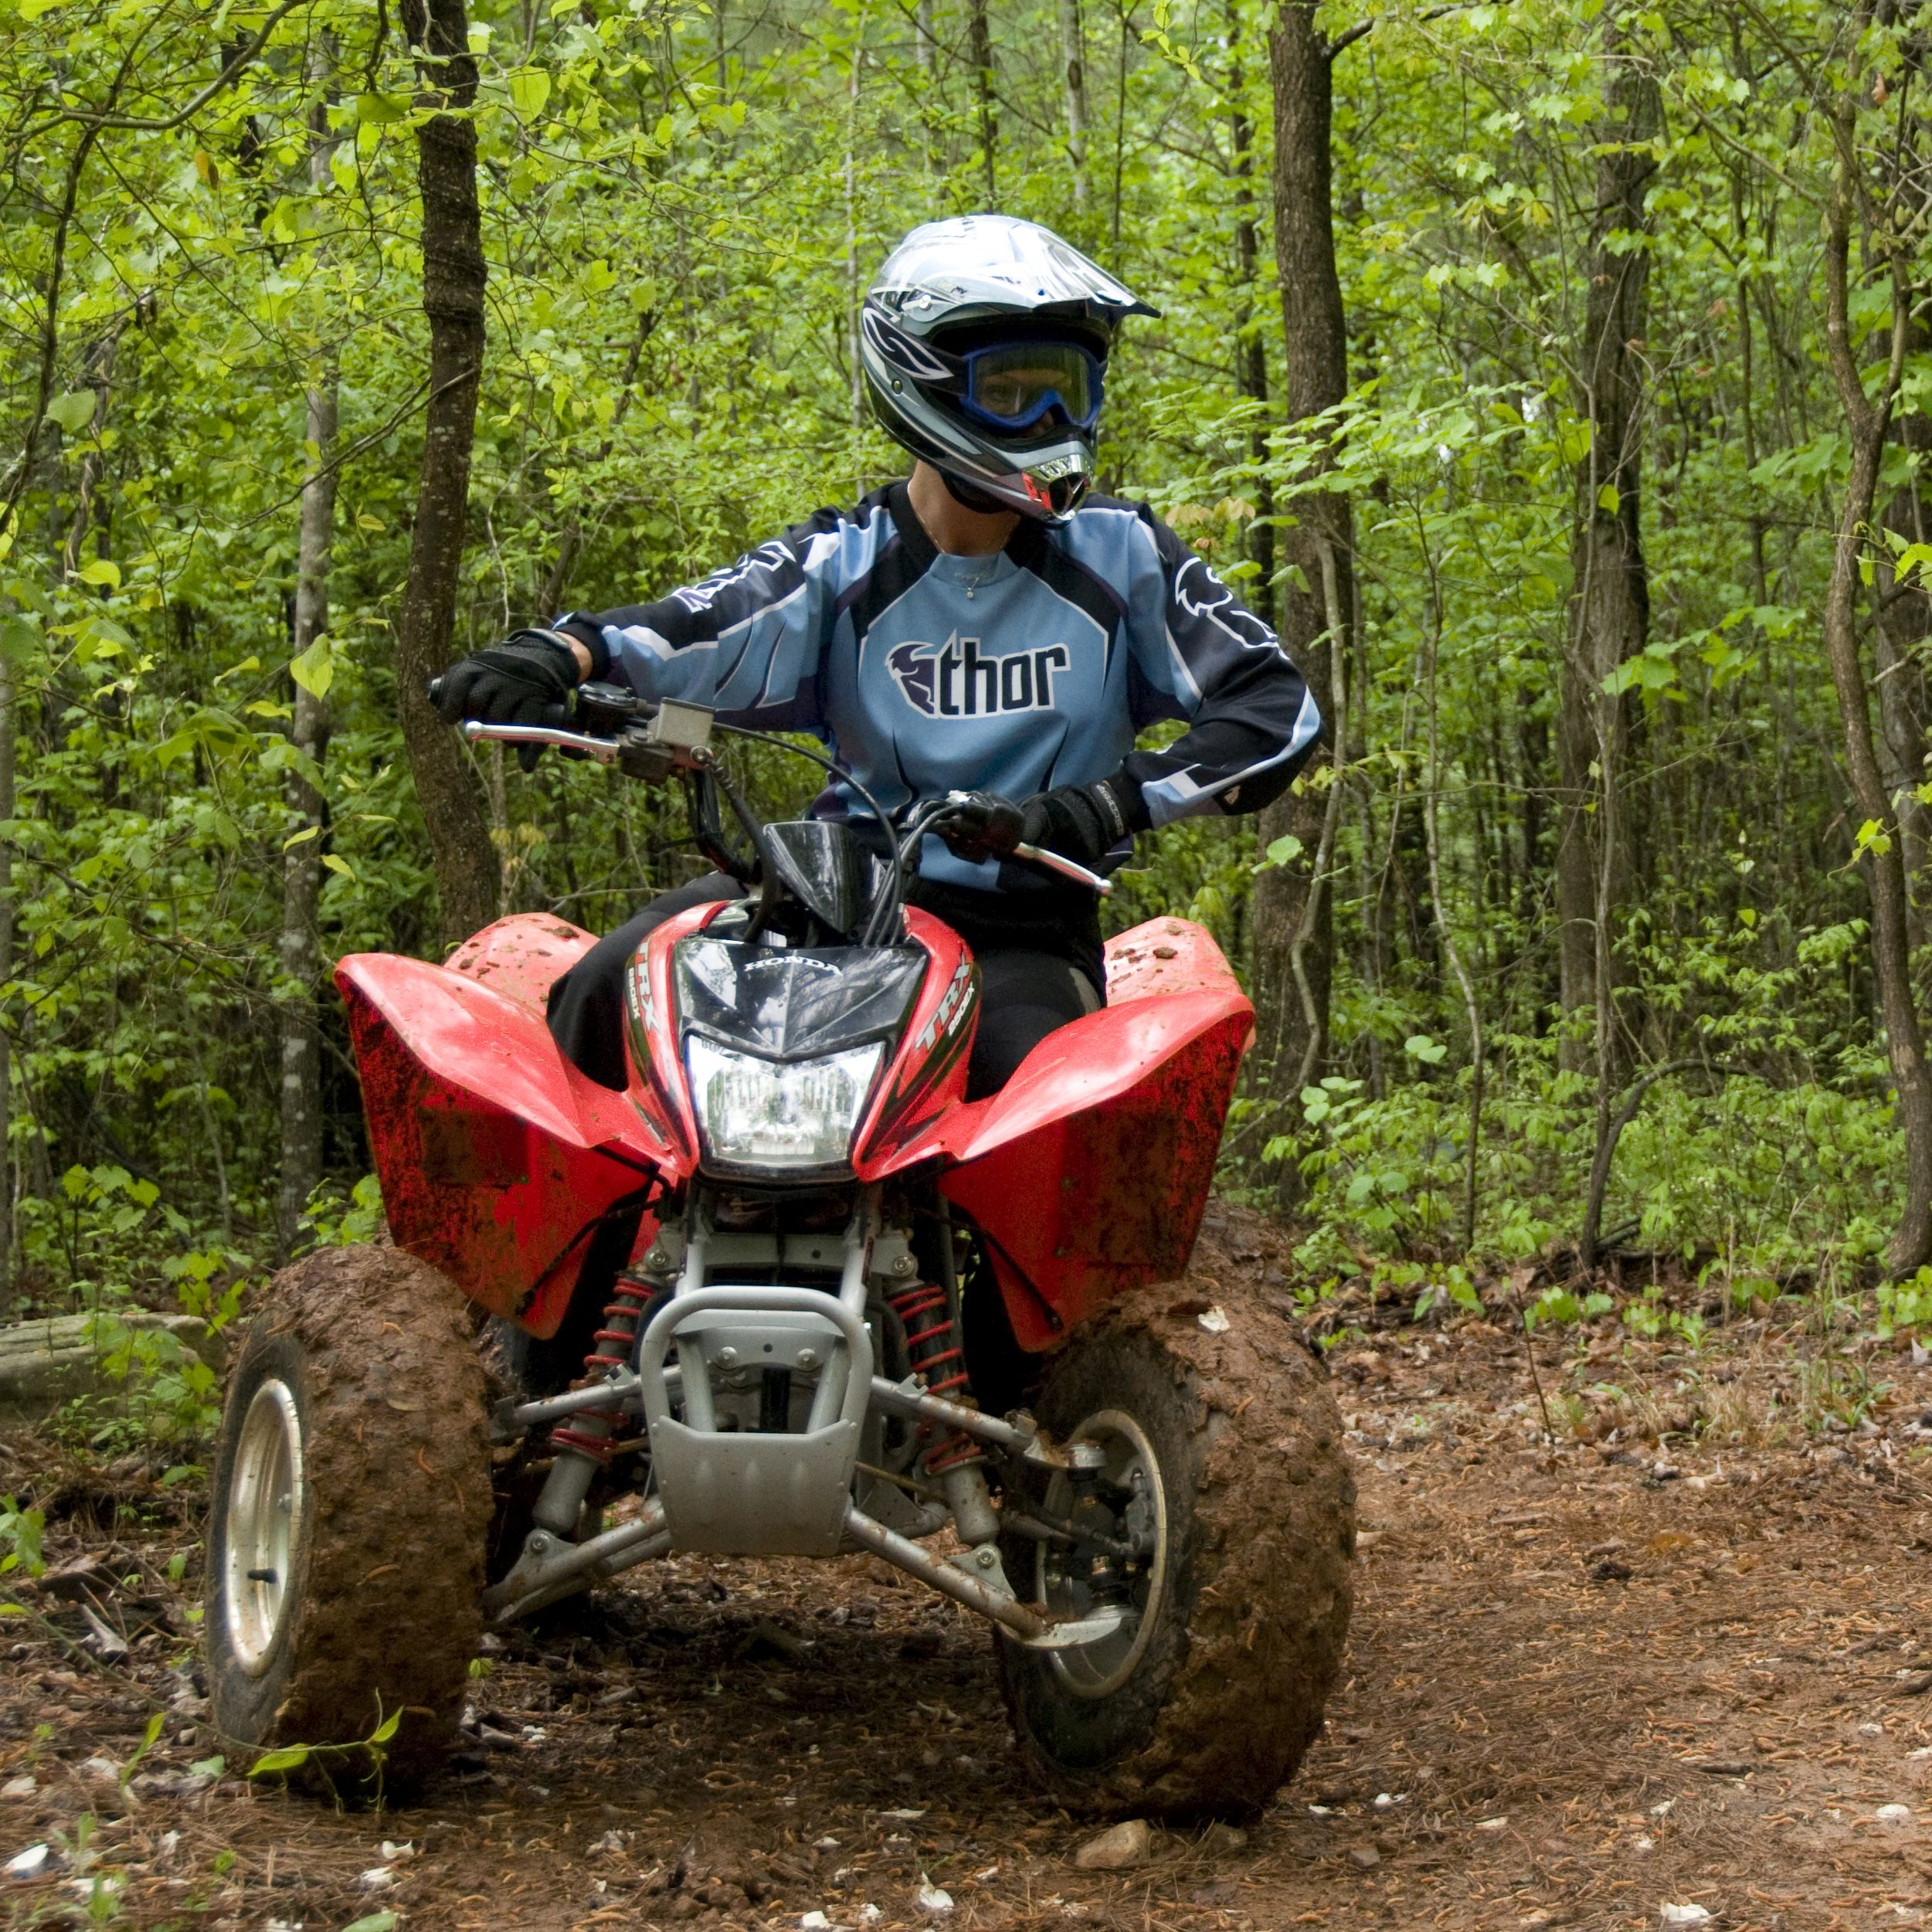 ASI ATV Safety Course - Adult